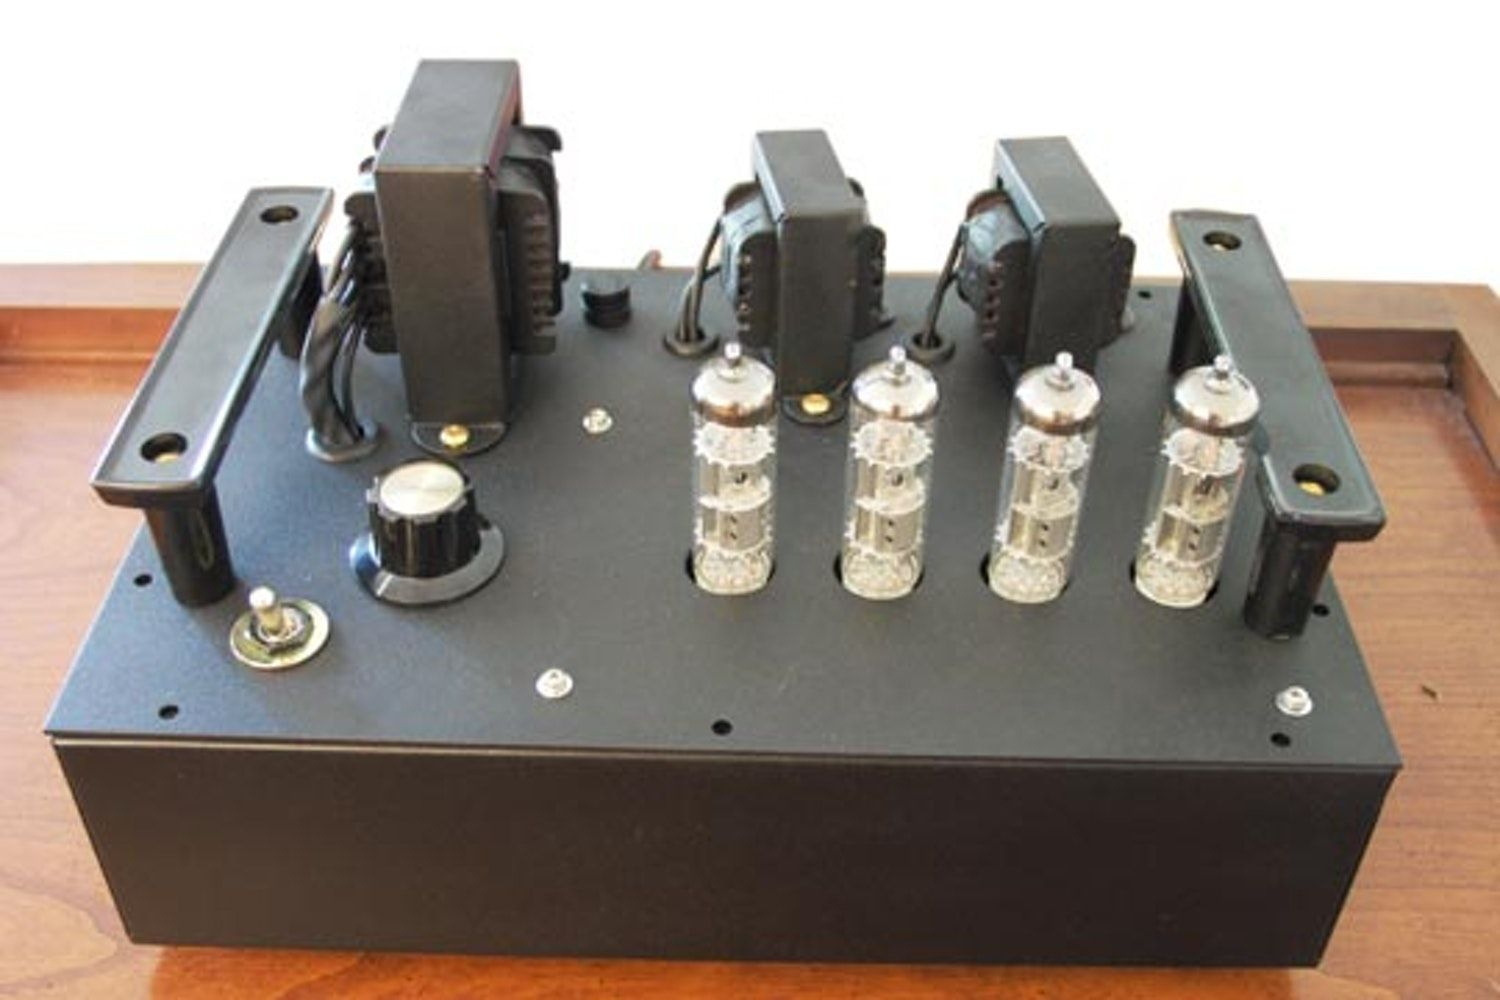 Diy Tube Amplifier Kit Build In Recycled Box Part 1 Guitar Project We A Using This Basic Schematic